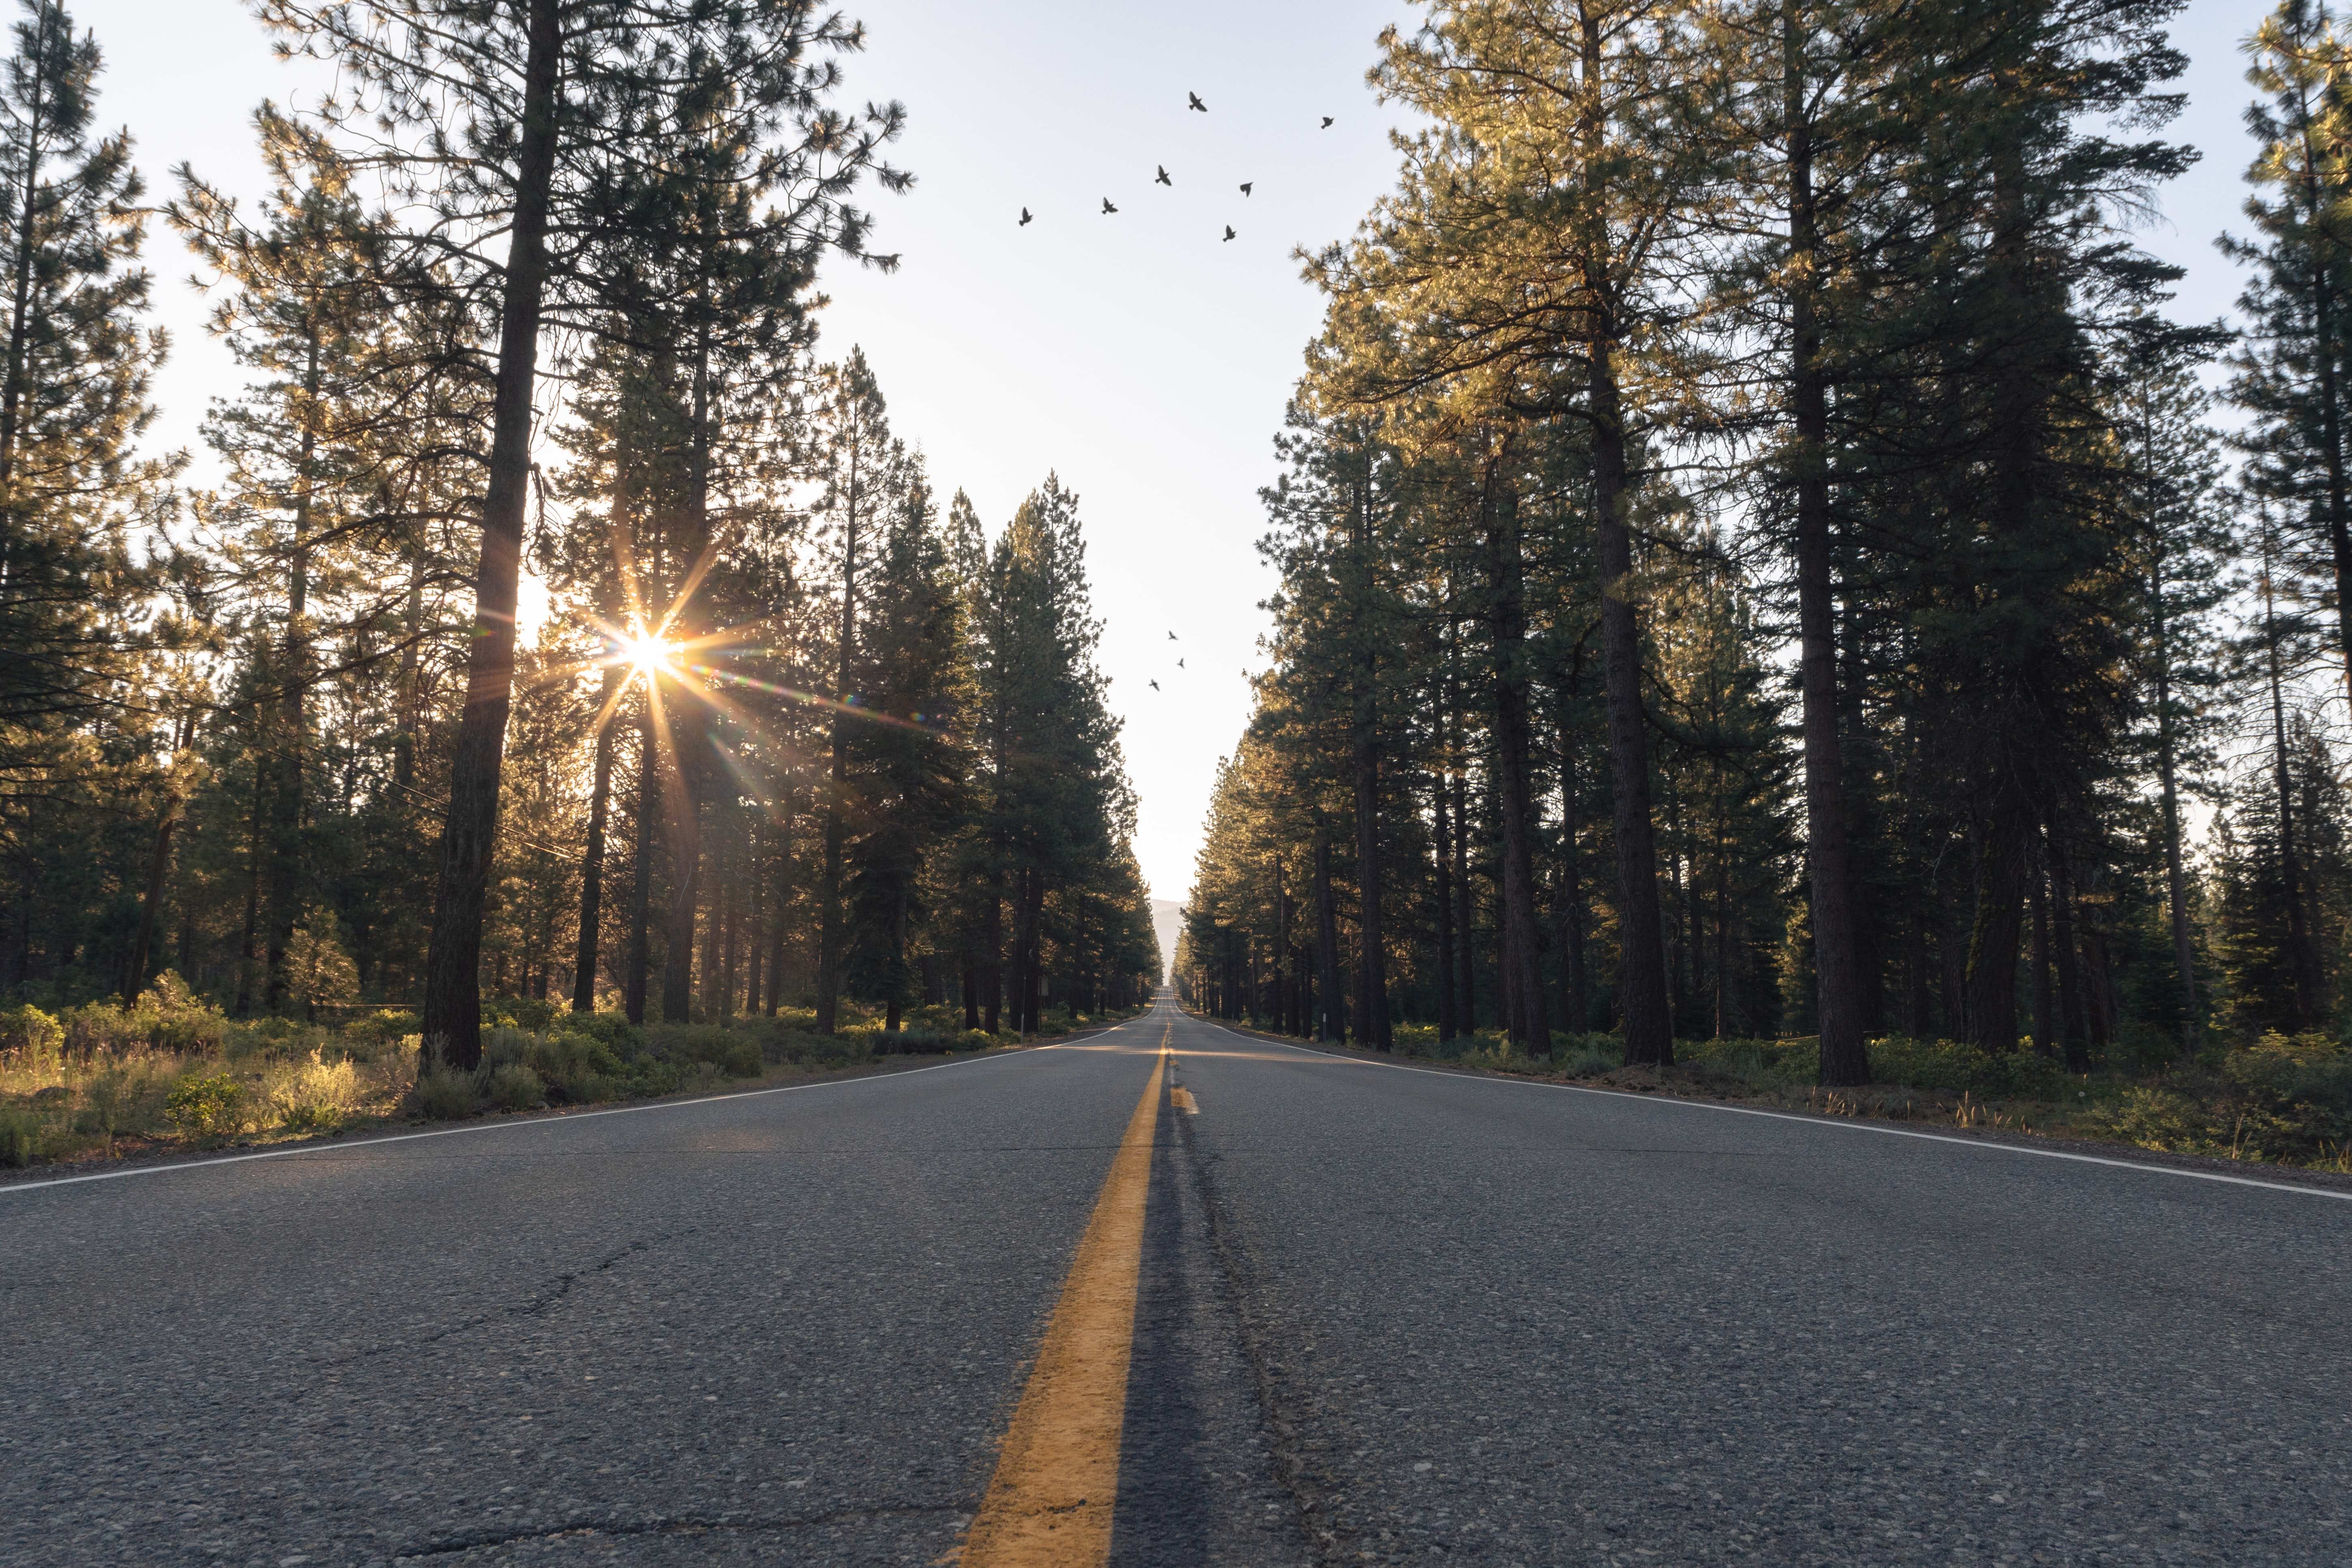 asphalt road in the middle of pine forest during day